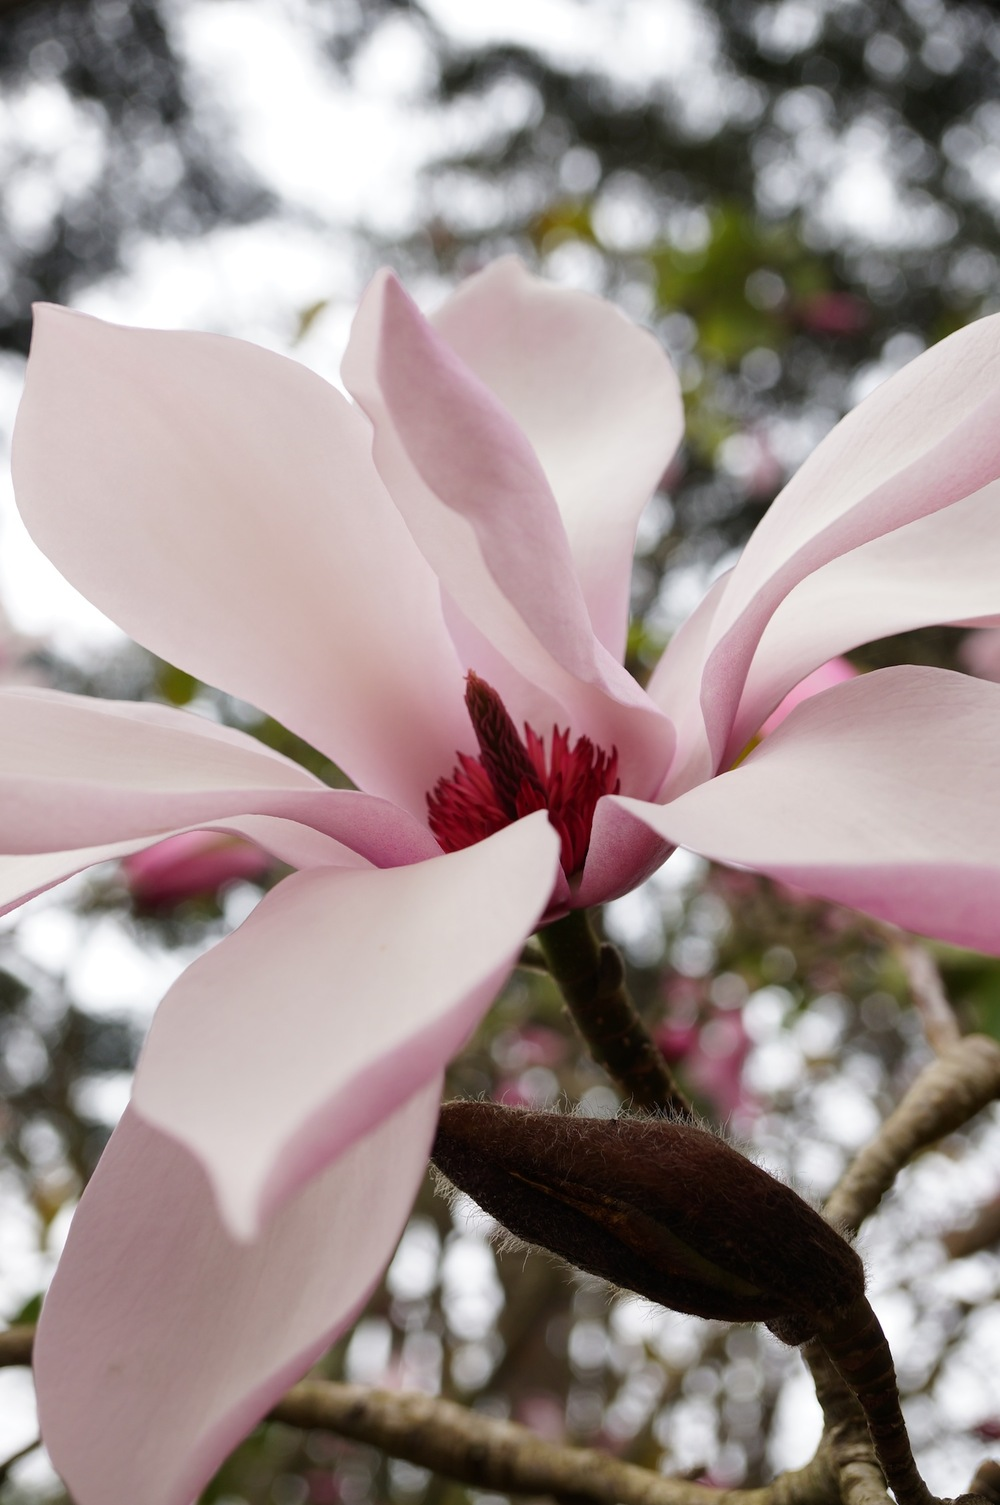 Magnolia sp. Charlotte Masson